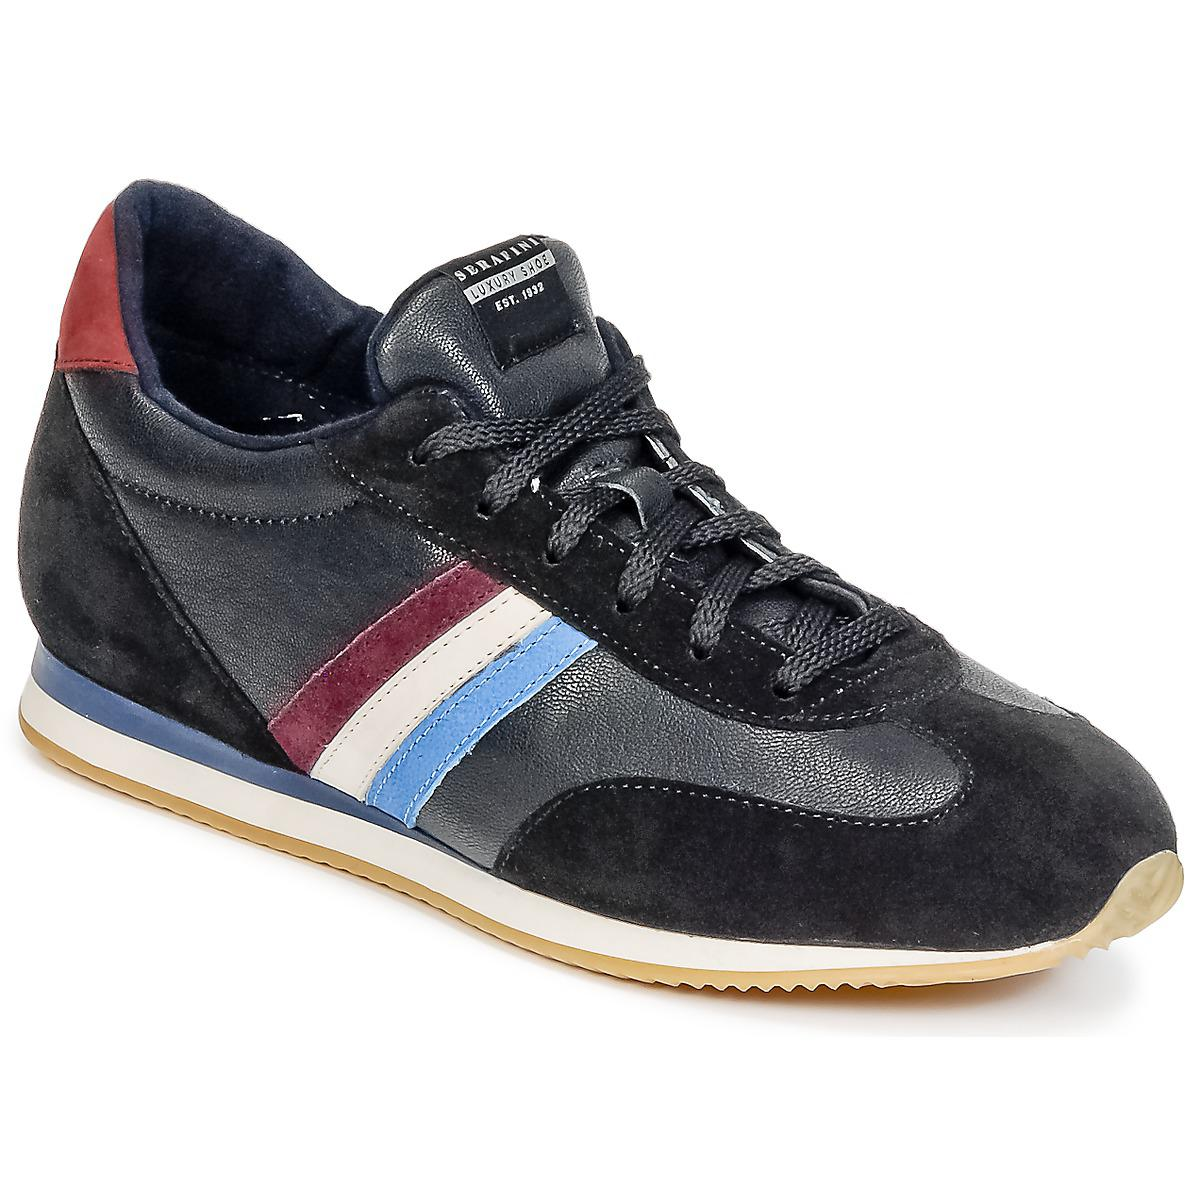 ee4c8351dcd2 Serafini Roma Shoes (high-top Trainers) in Black for Men - Lyst